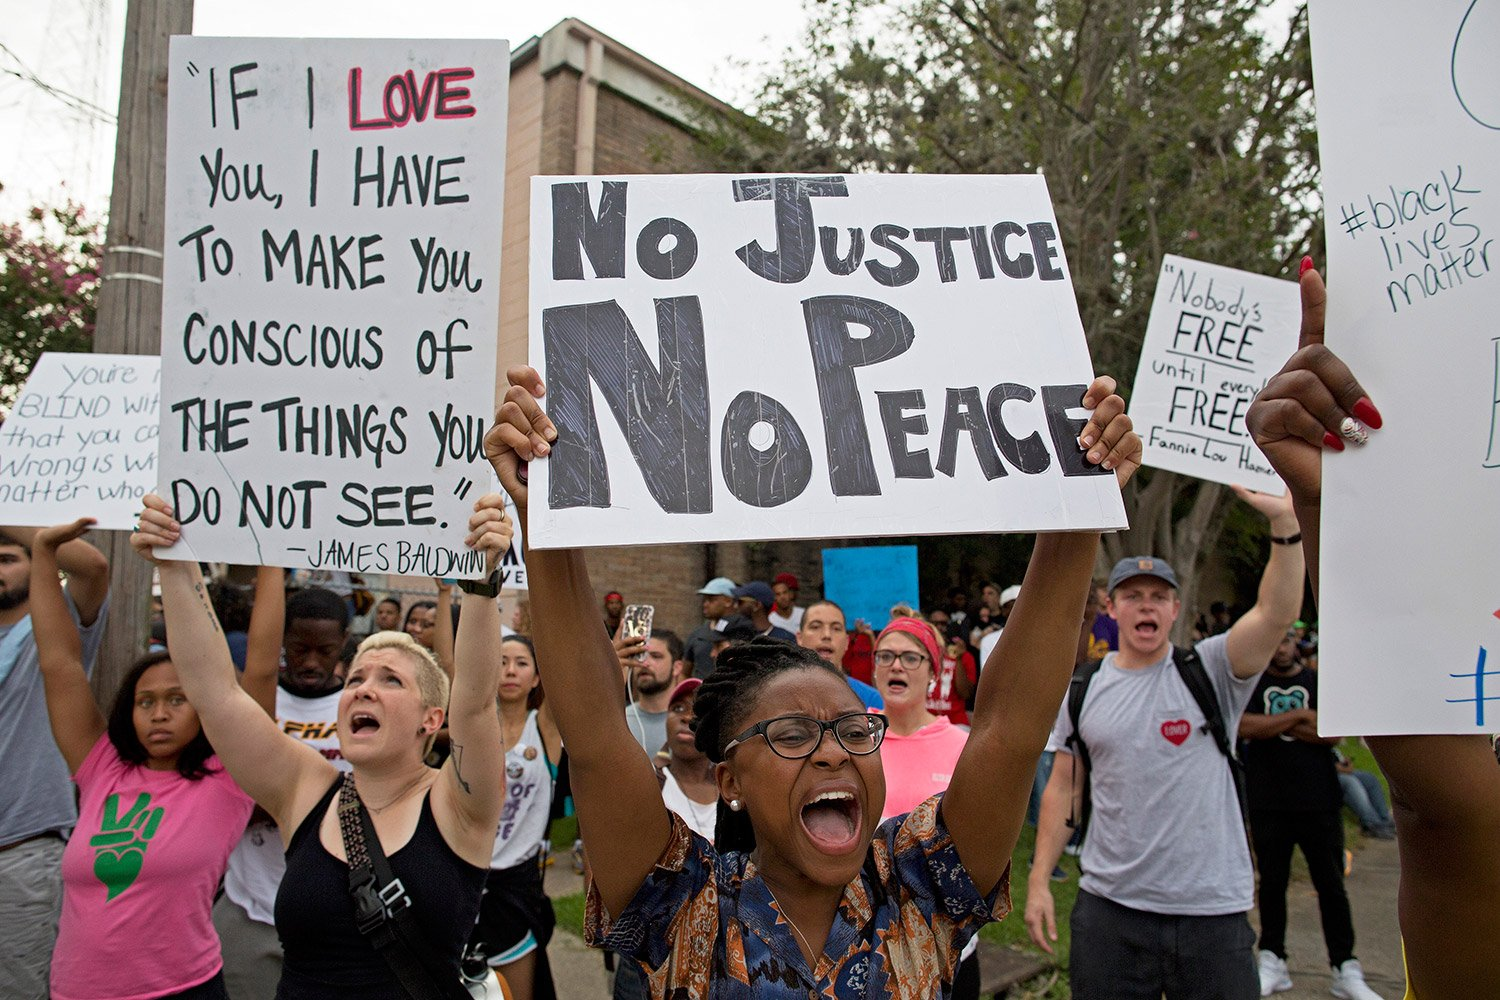 Protesters hold signs as they march through a residential neighborhood in Baton Rouge.